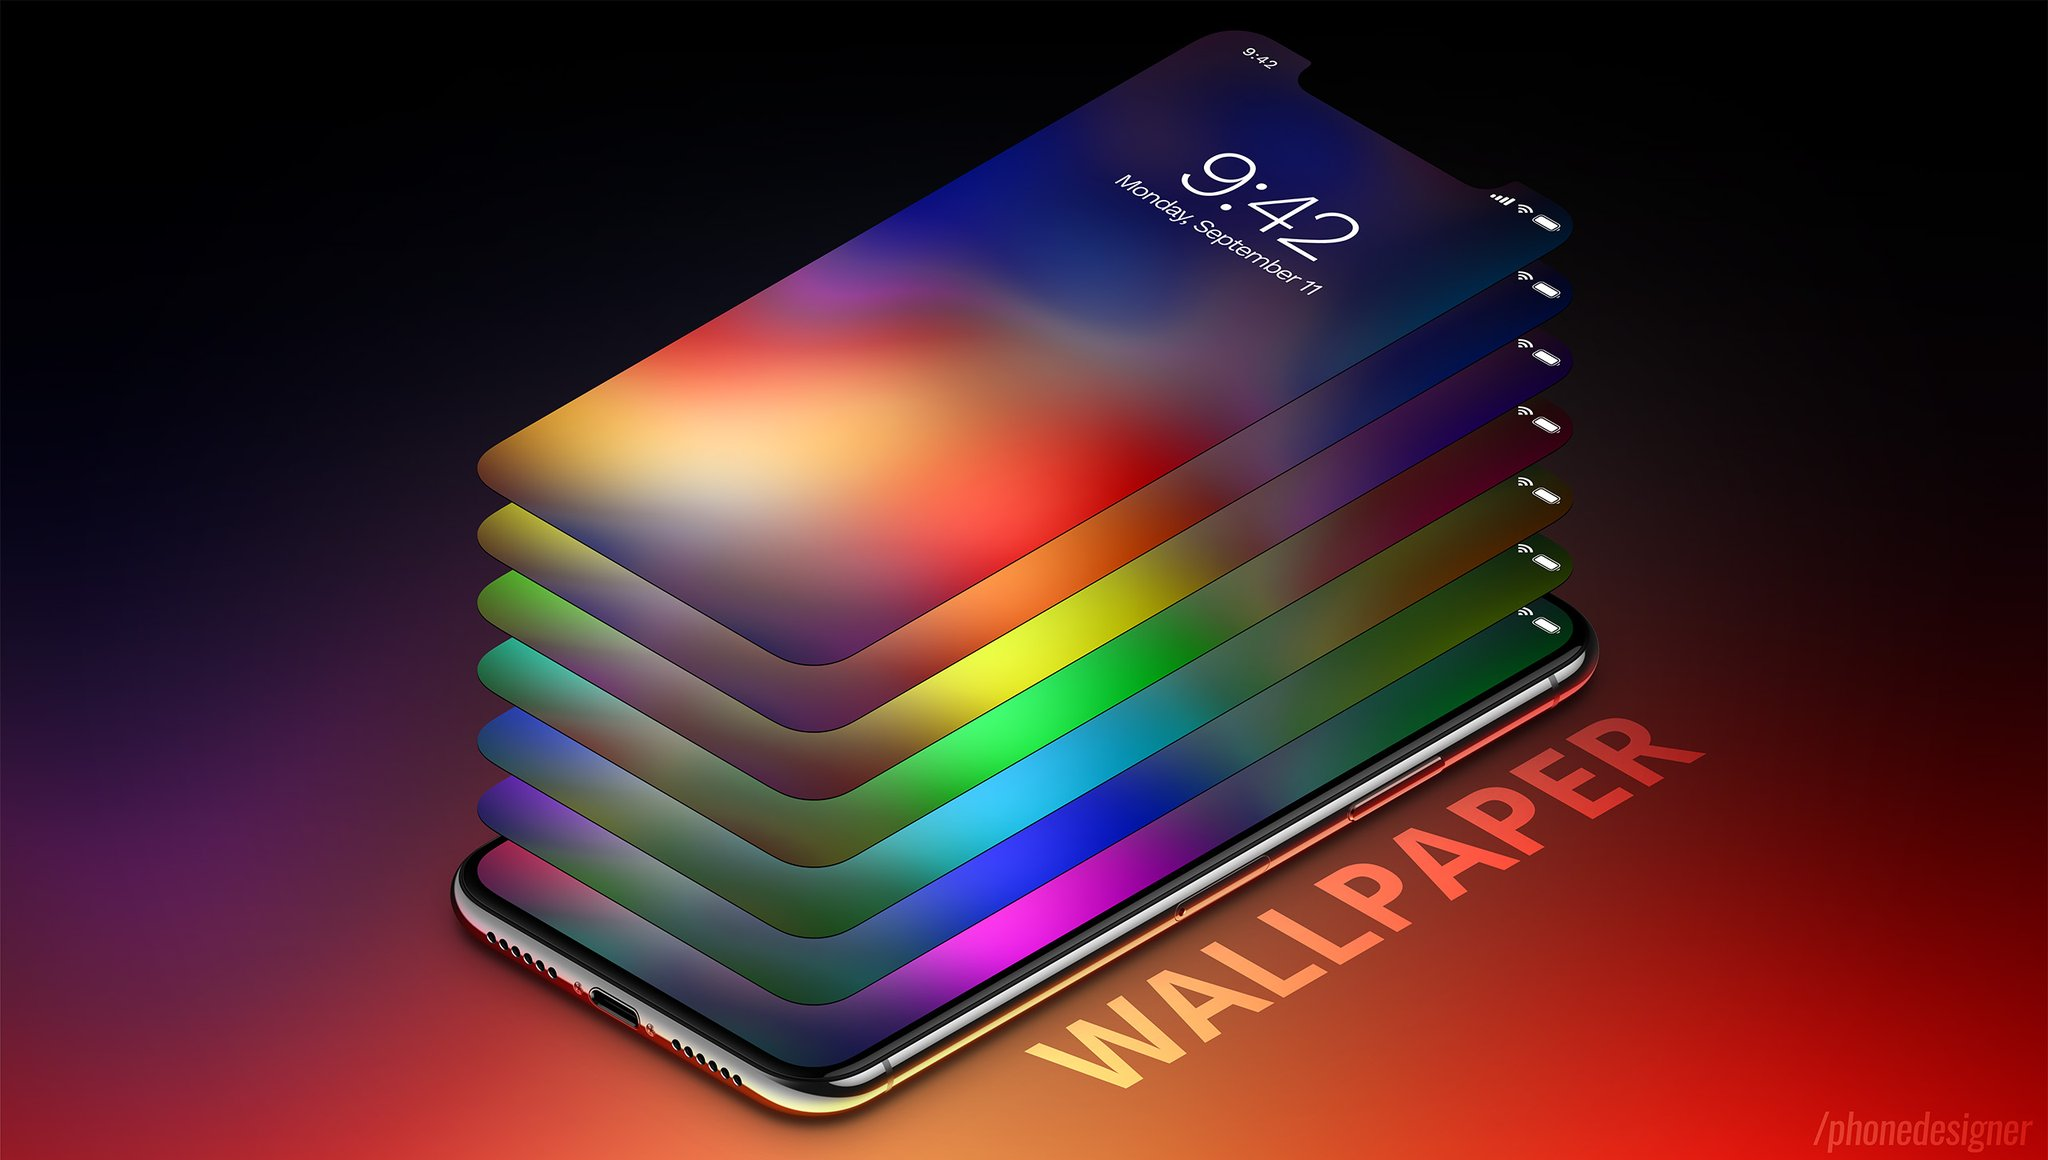 As The IPhone X Pre Order Date Comes In Just 33 Days On October 27 Orders Will Open With Initial Deliveries November 3 Wallpapers Of